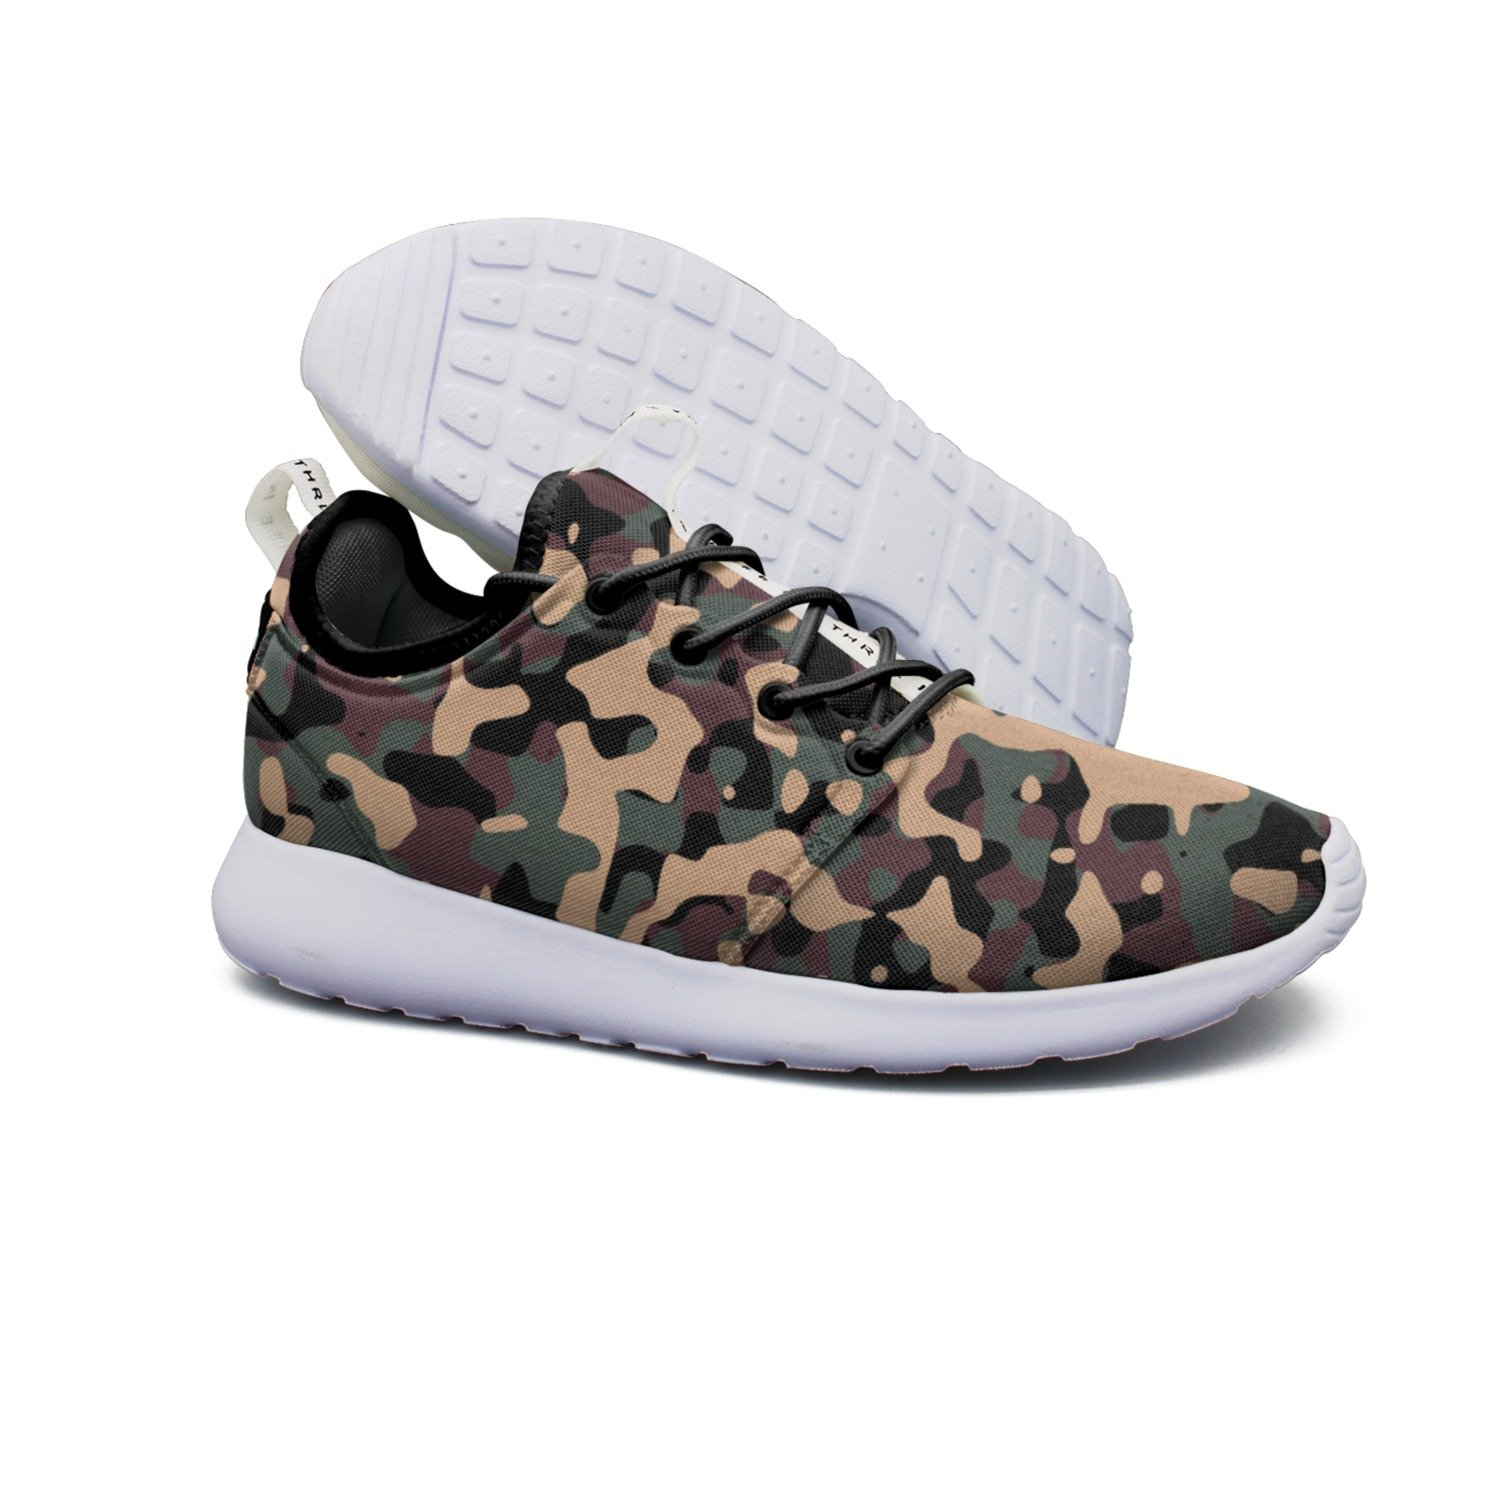 Lightweight Shoe Soldier Camouflage Breathable Mesh Running Shoes